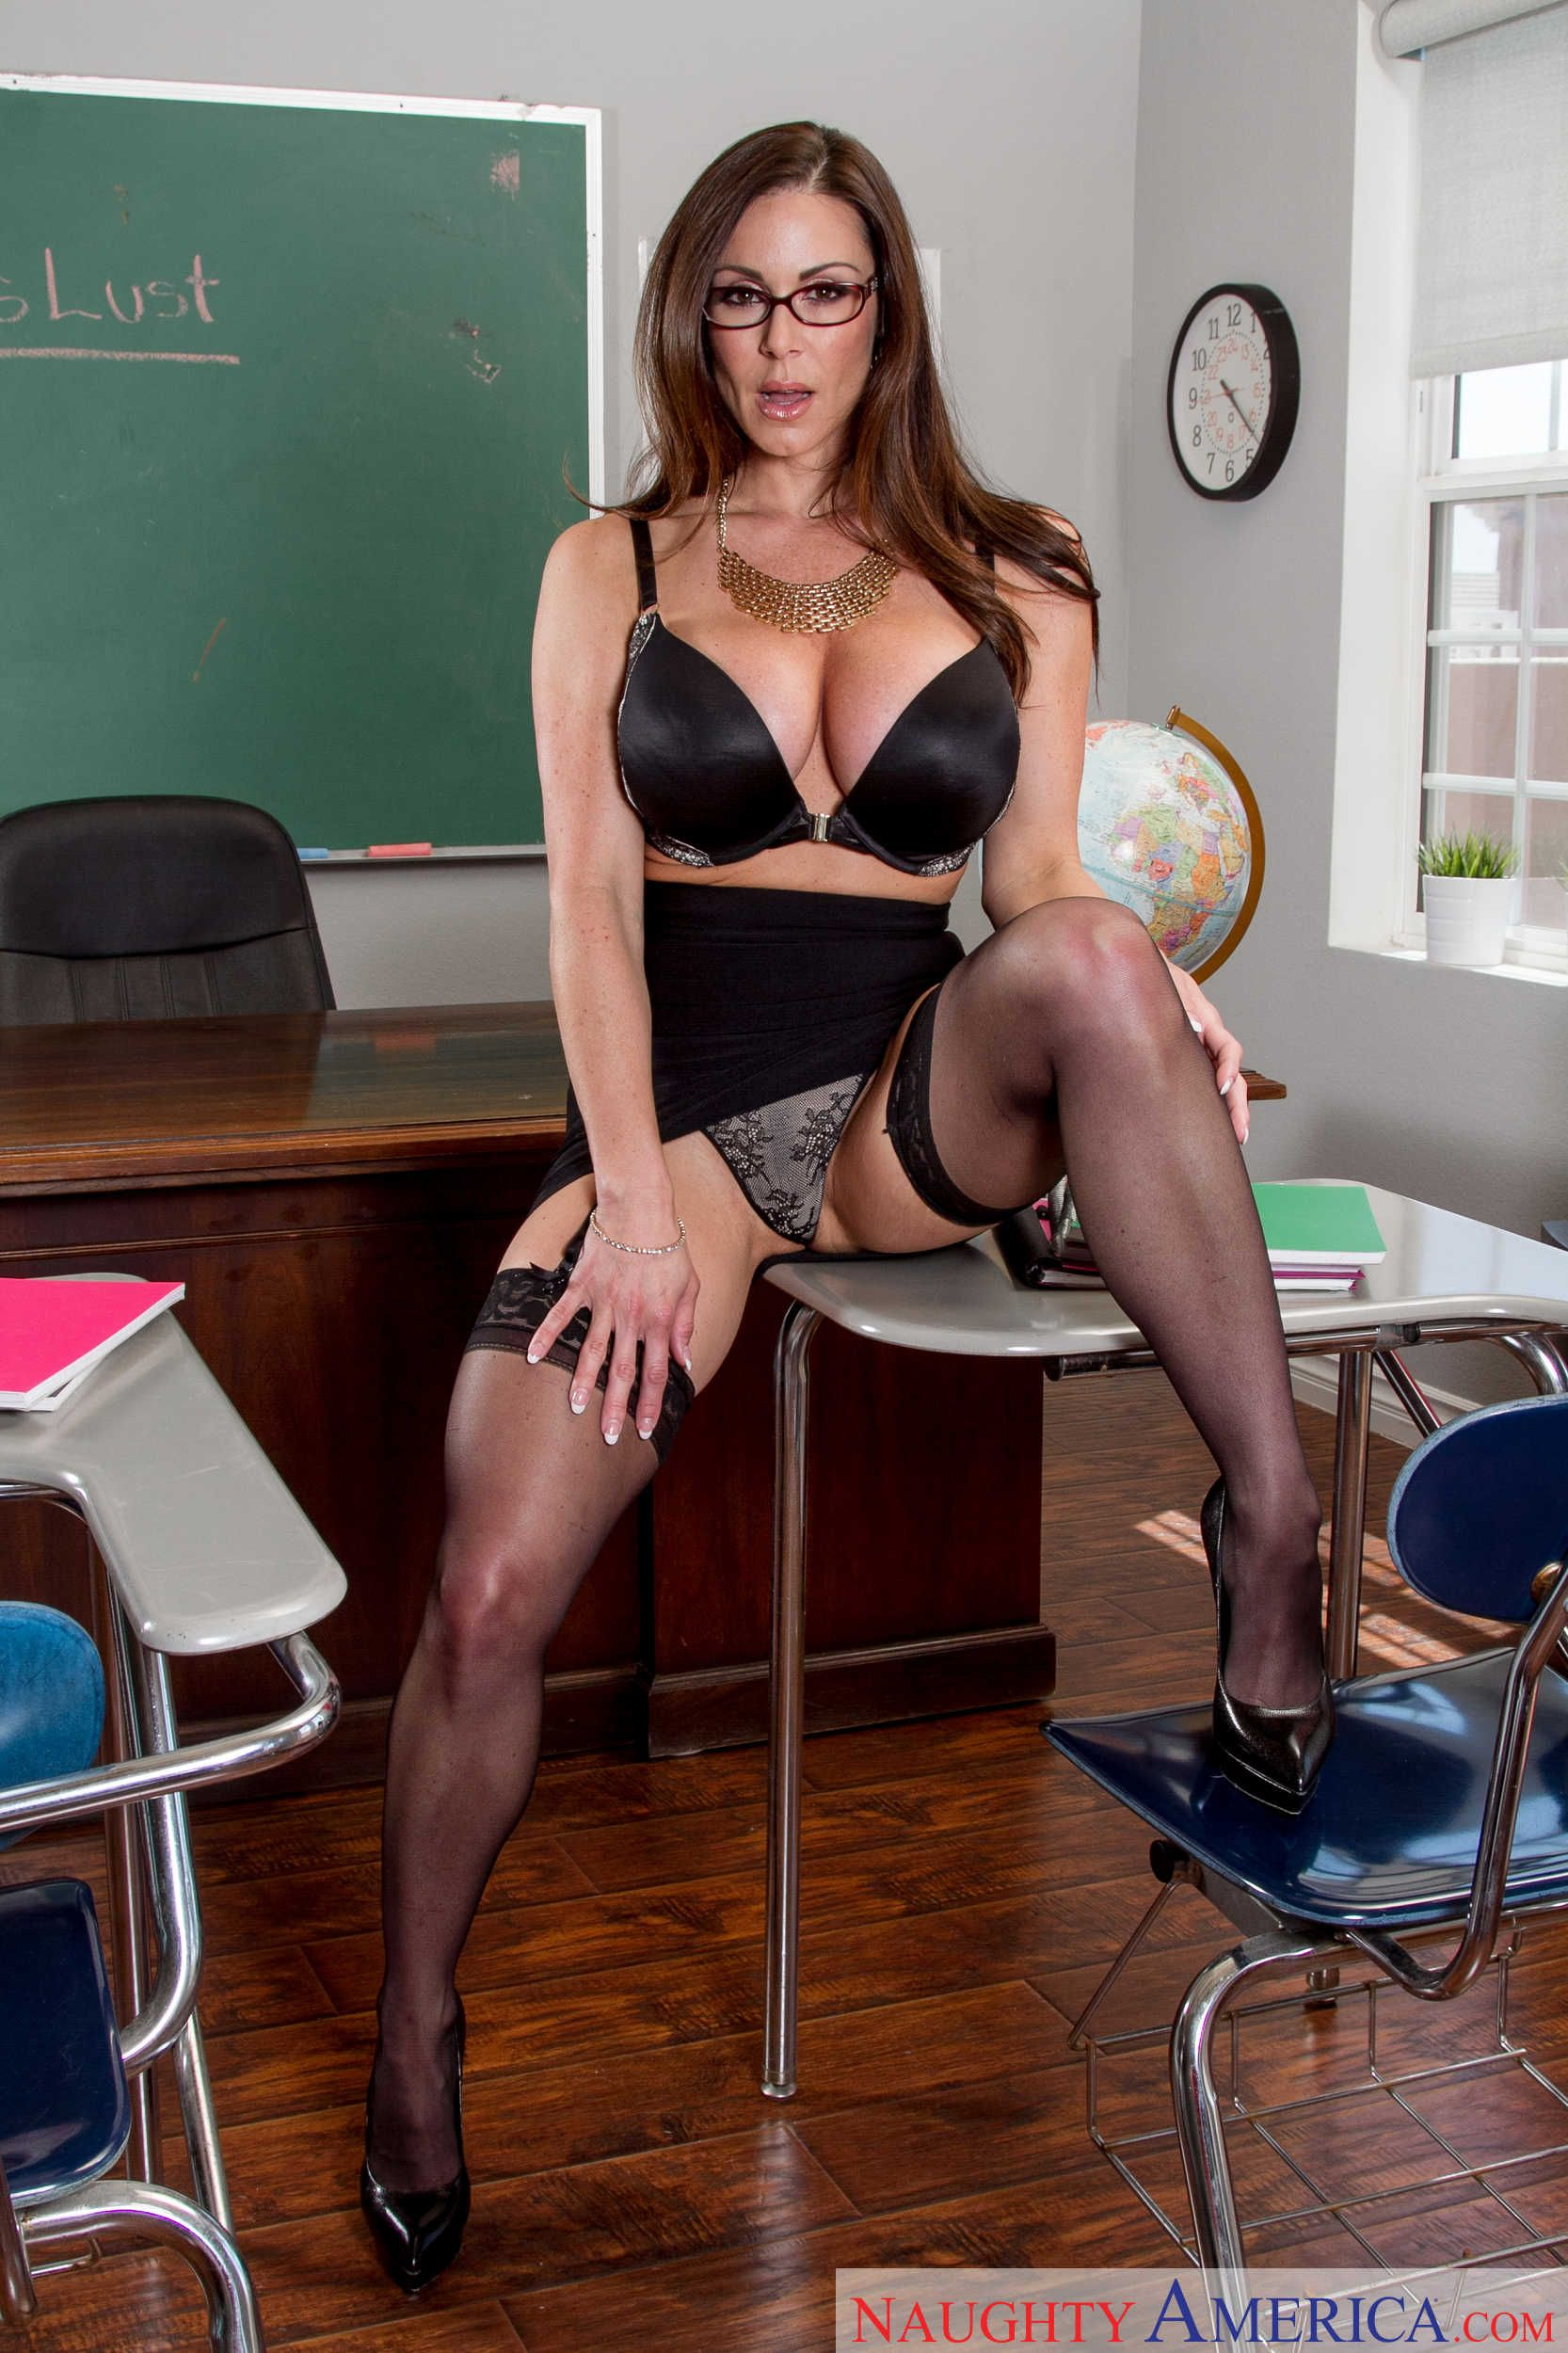 My first hot teacher